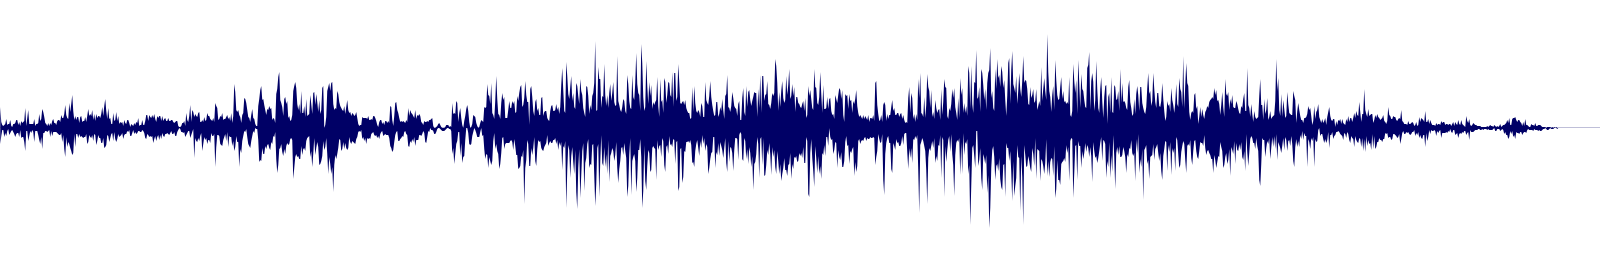 waveform of track #129367